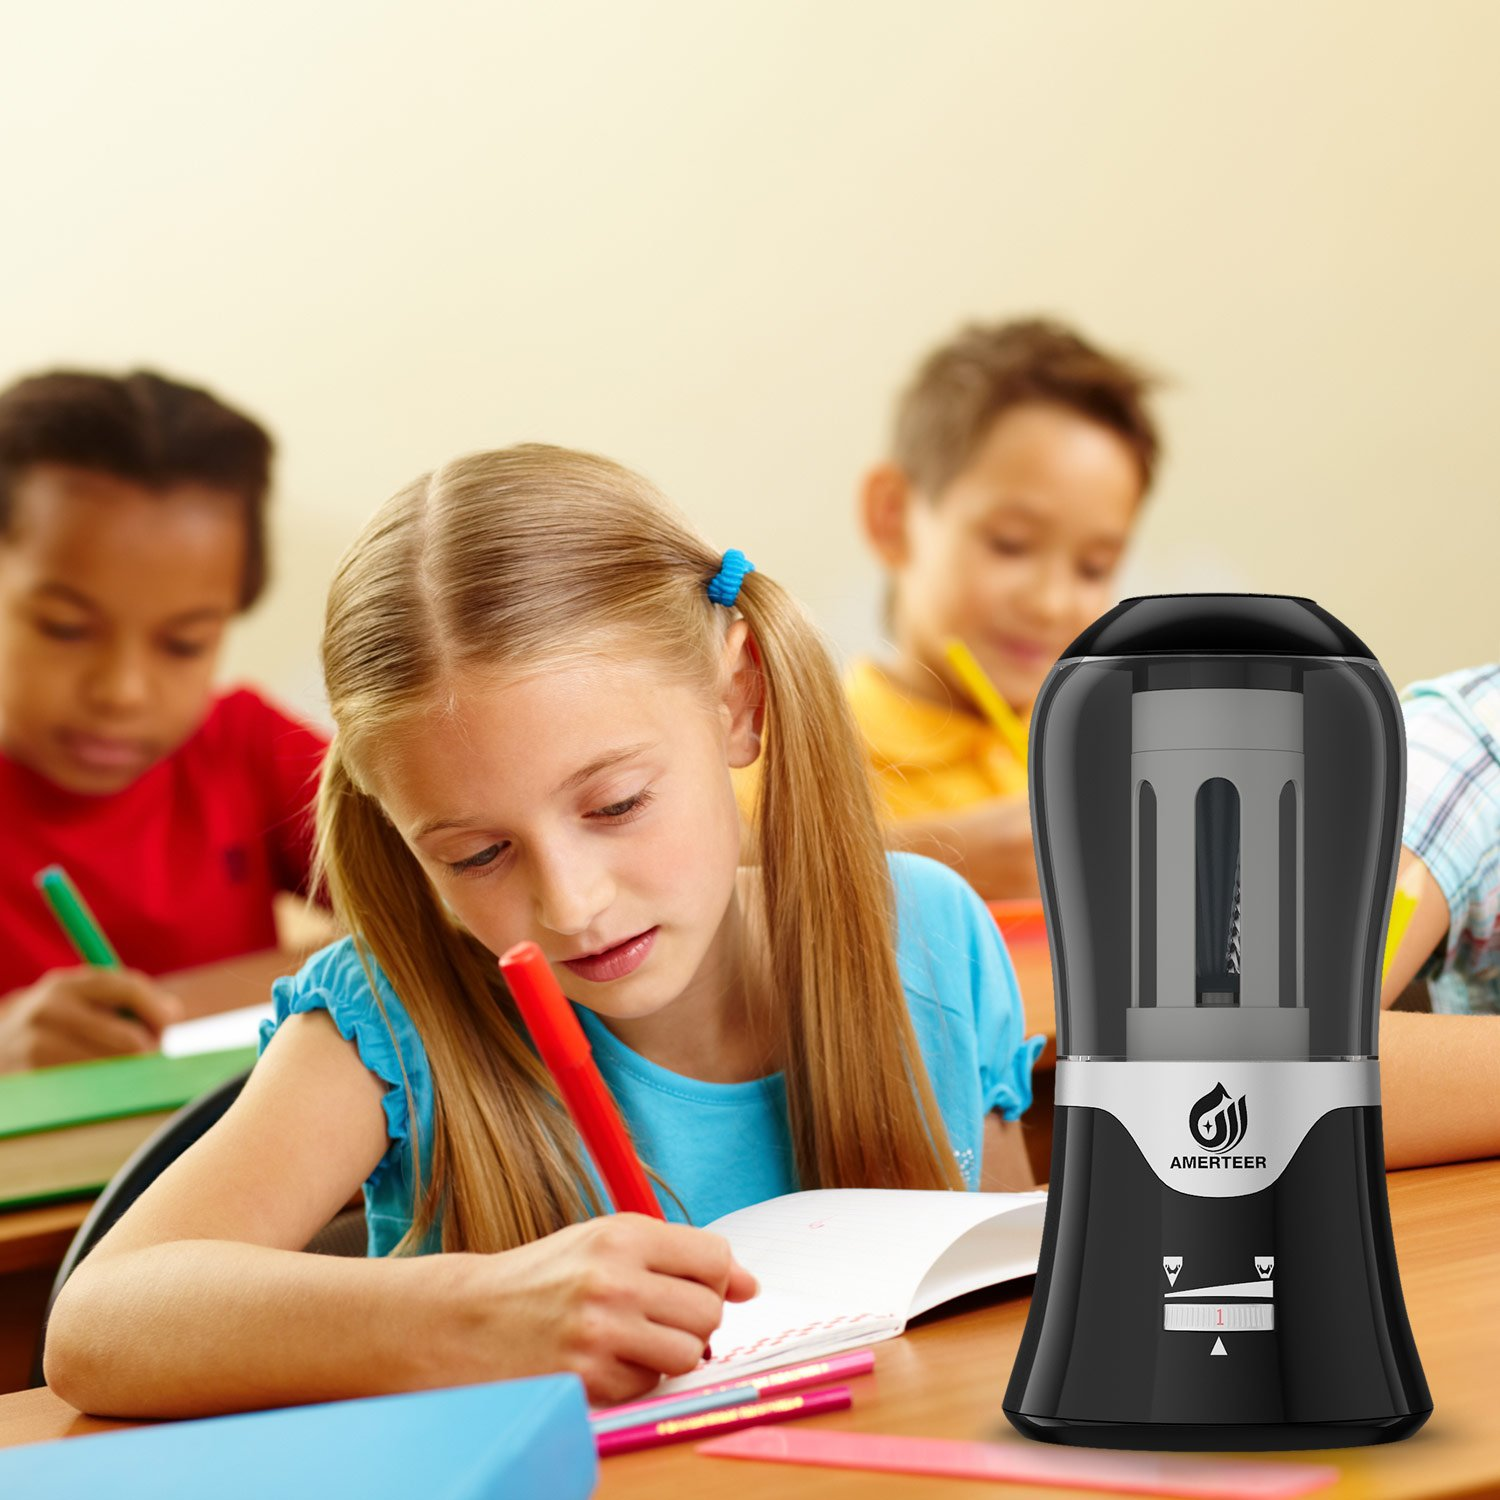 AMERTEER Electric Pencil Sharpener - AC Powered with Auto-Stop Feature,Durable and Portable for Classroom & Office,Safe for Students and Kids by AMERTEER (Image #7)